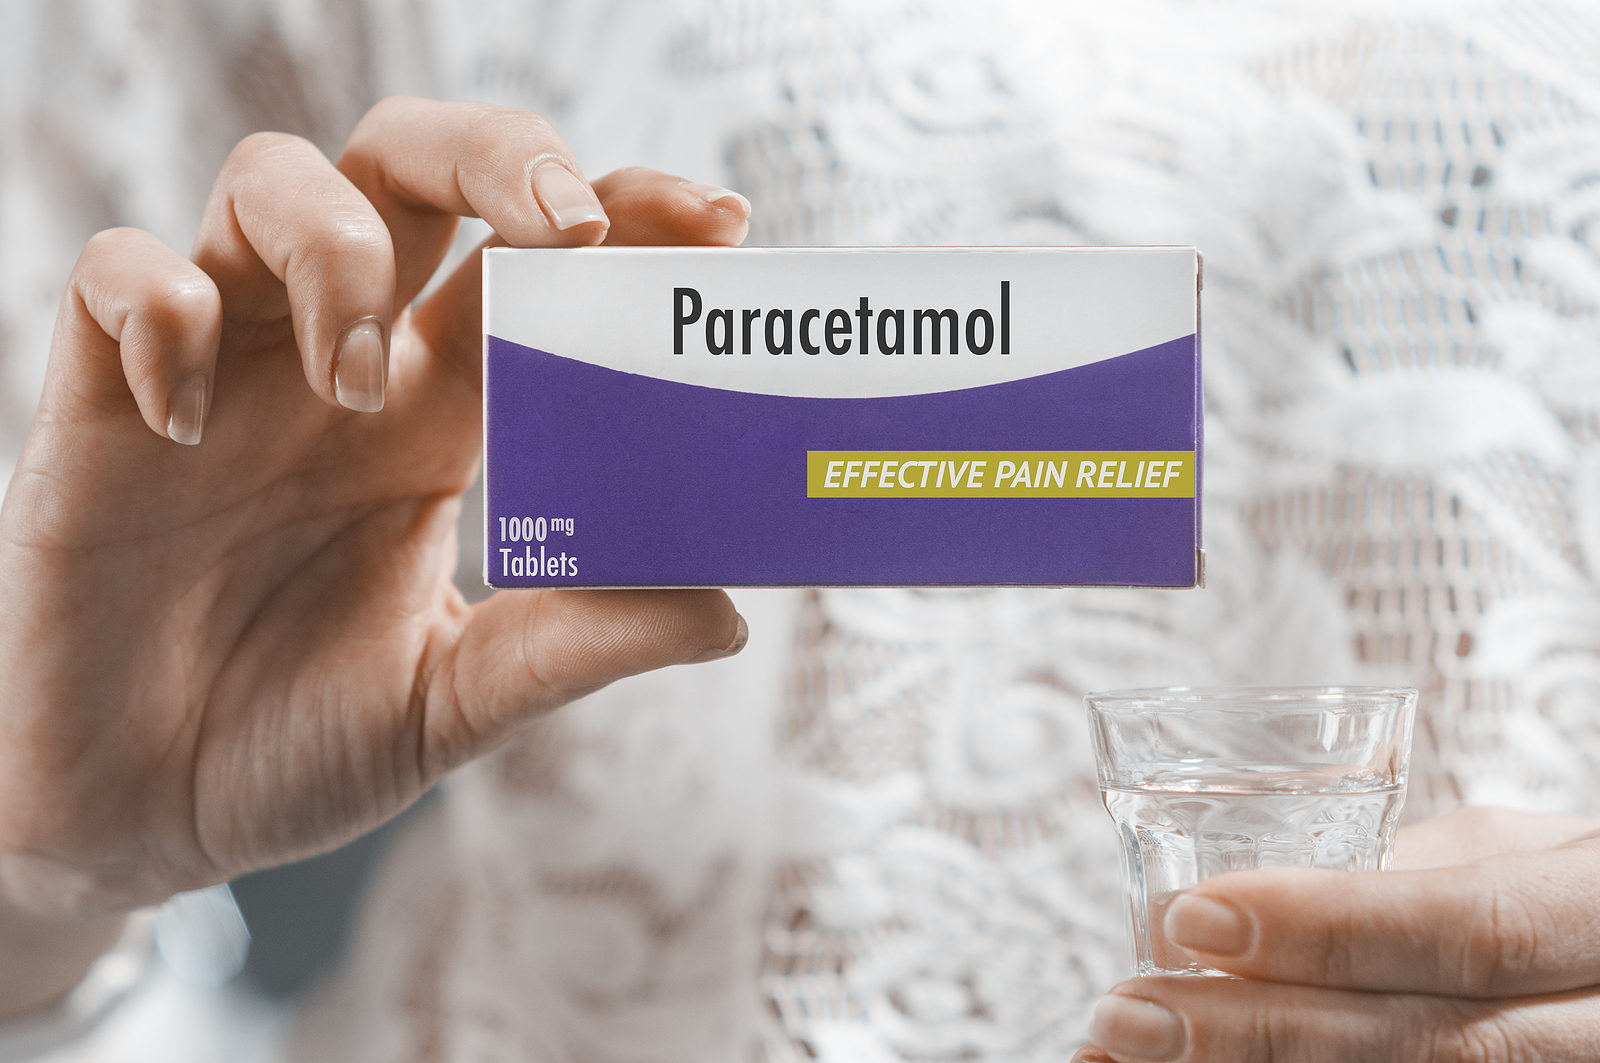 Big rise in cases of liver failure from 'safe' paracetamol